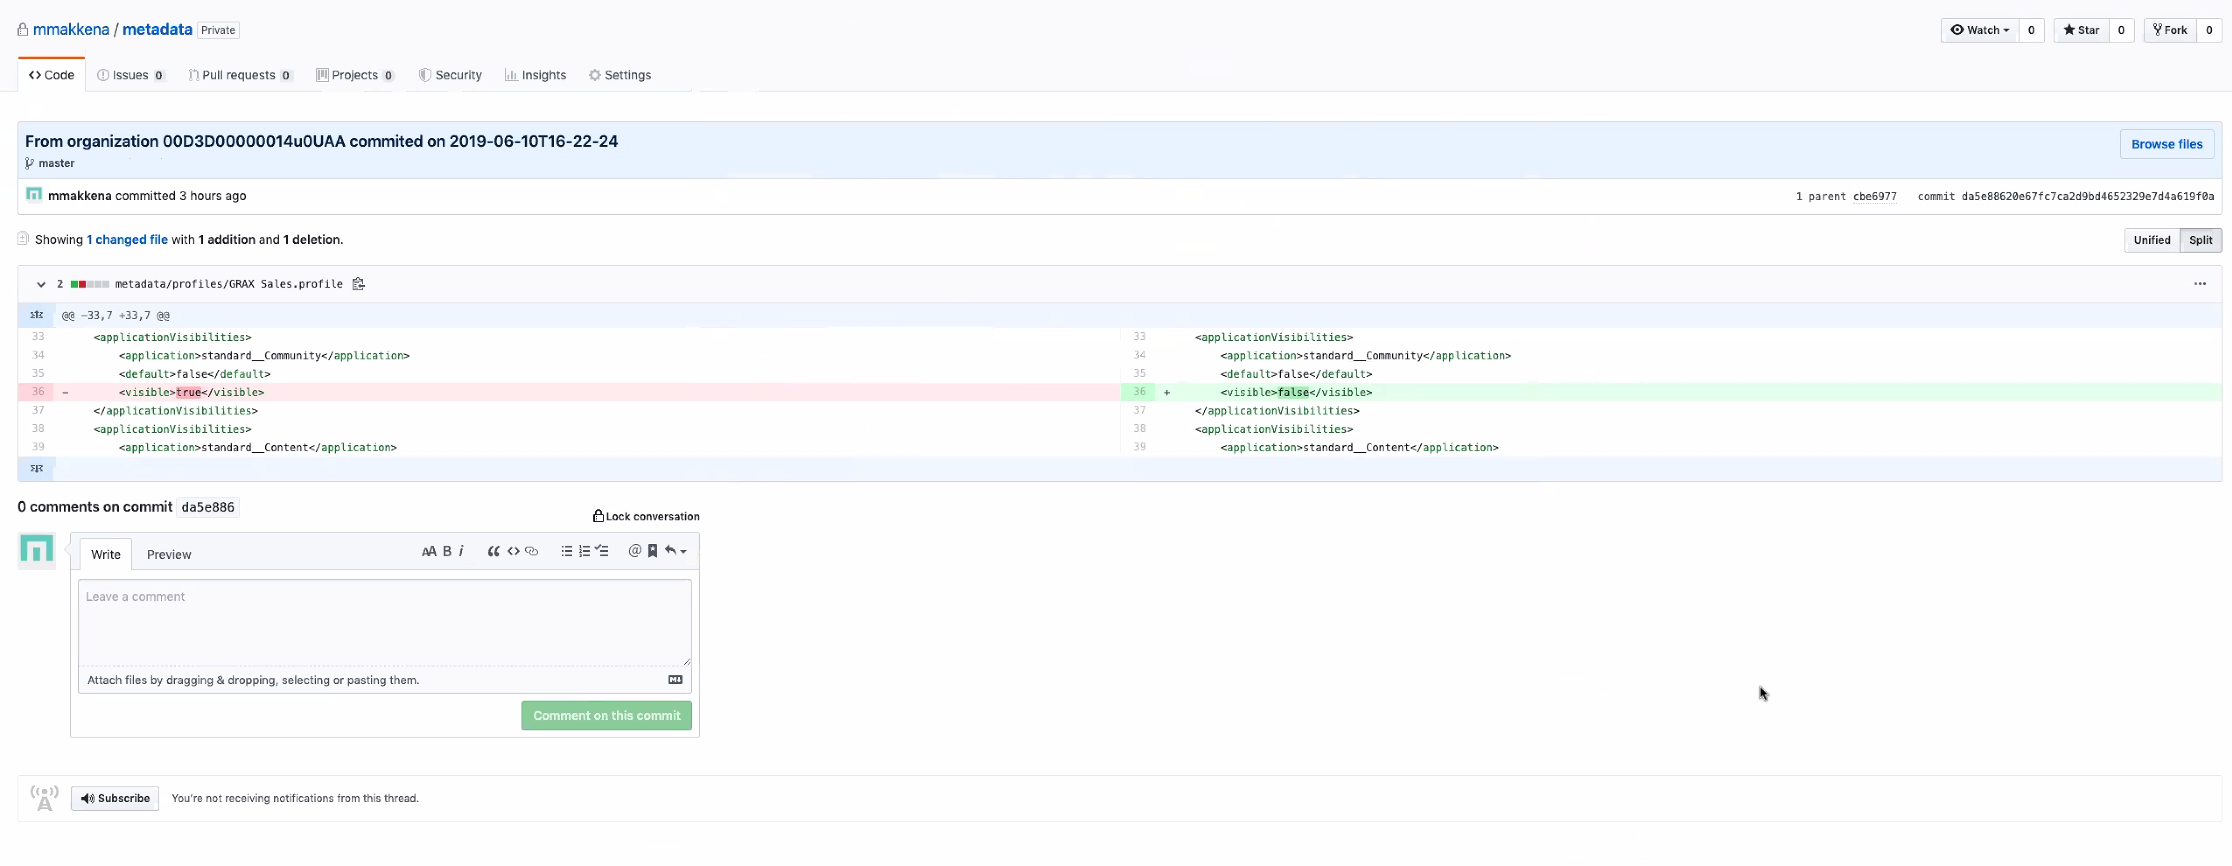 Track all metadata changes and compare versions across each metadata backup using the Git tools you are accustomed to